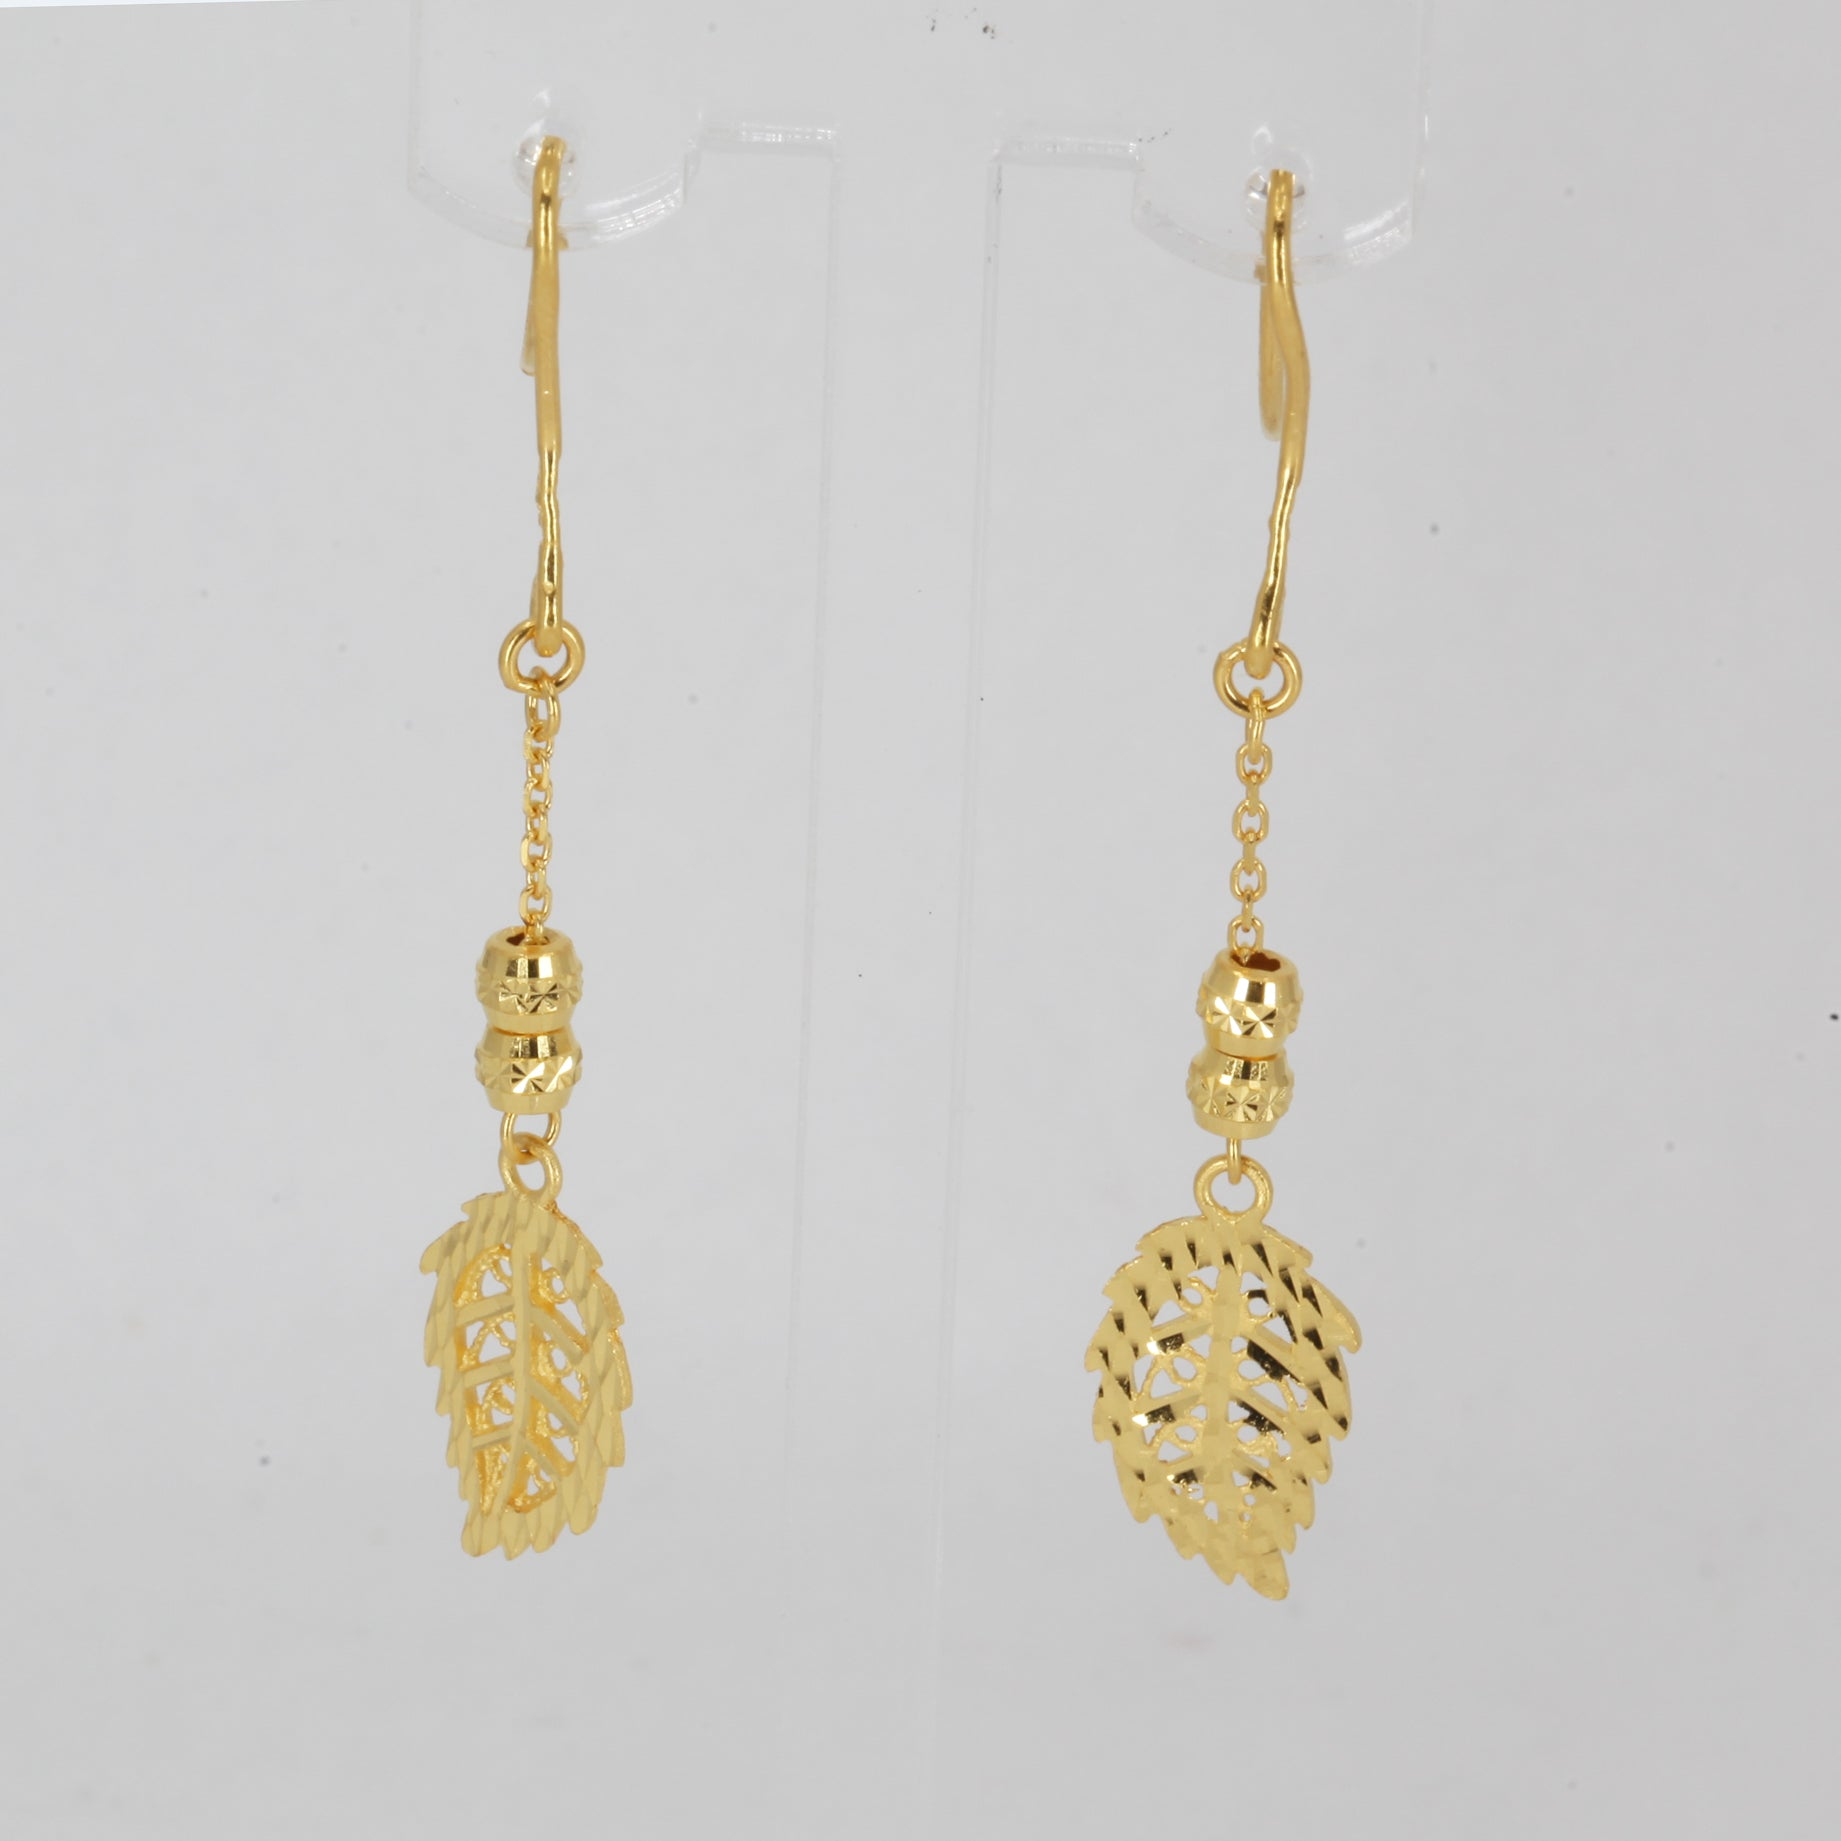 24K Solid Yellow Gold Leaf Hanging Earrings 4.1 Grams